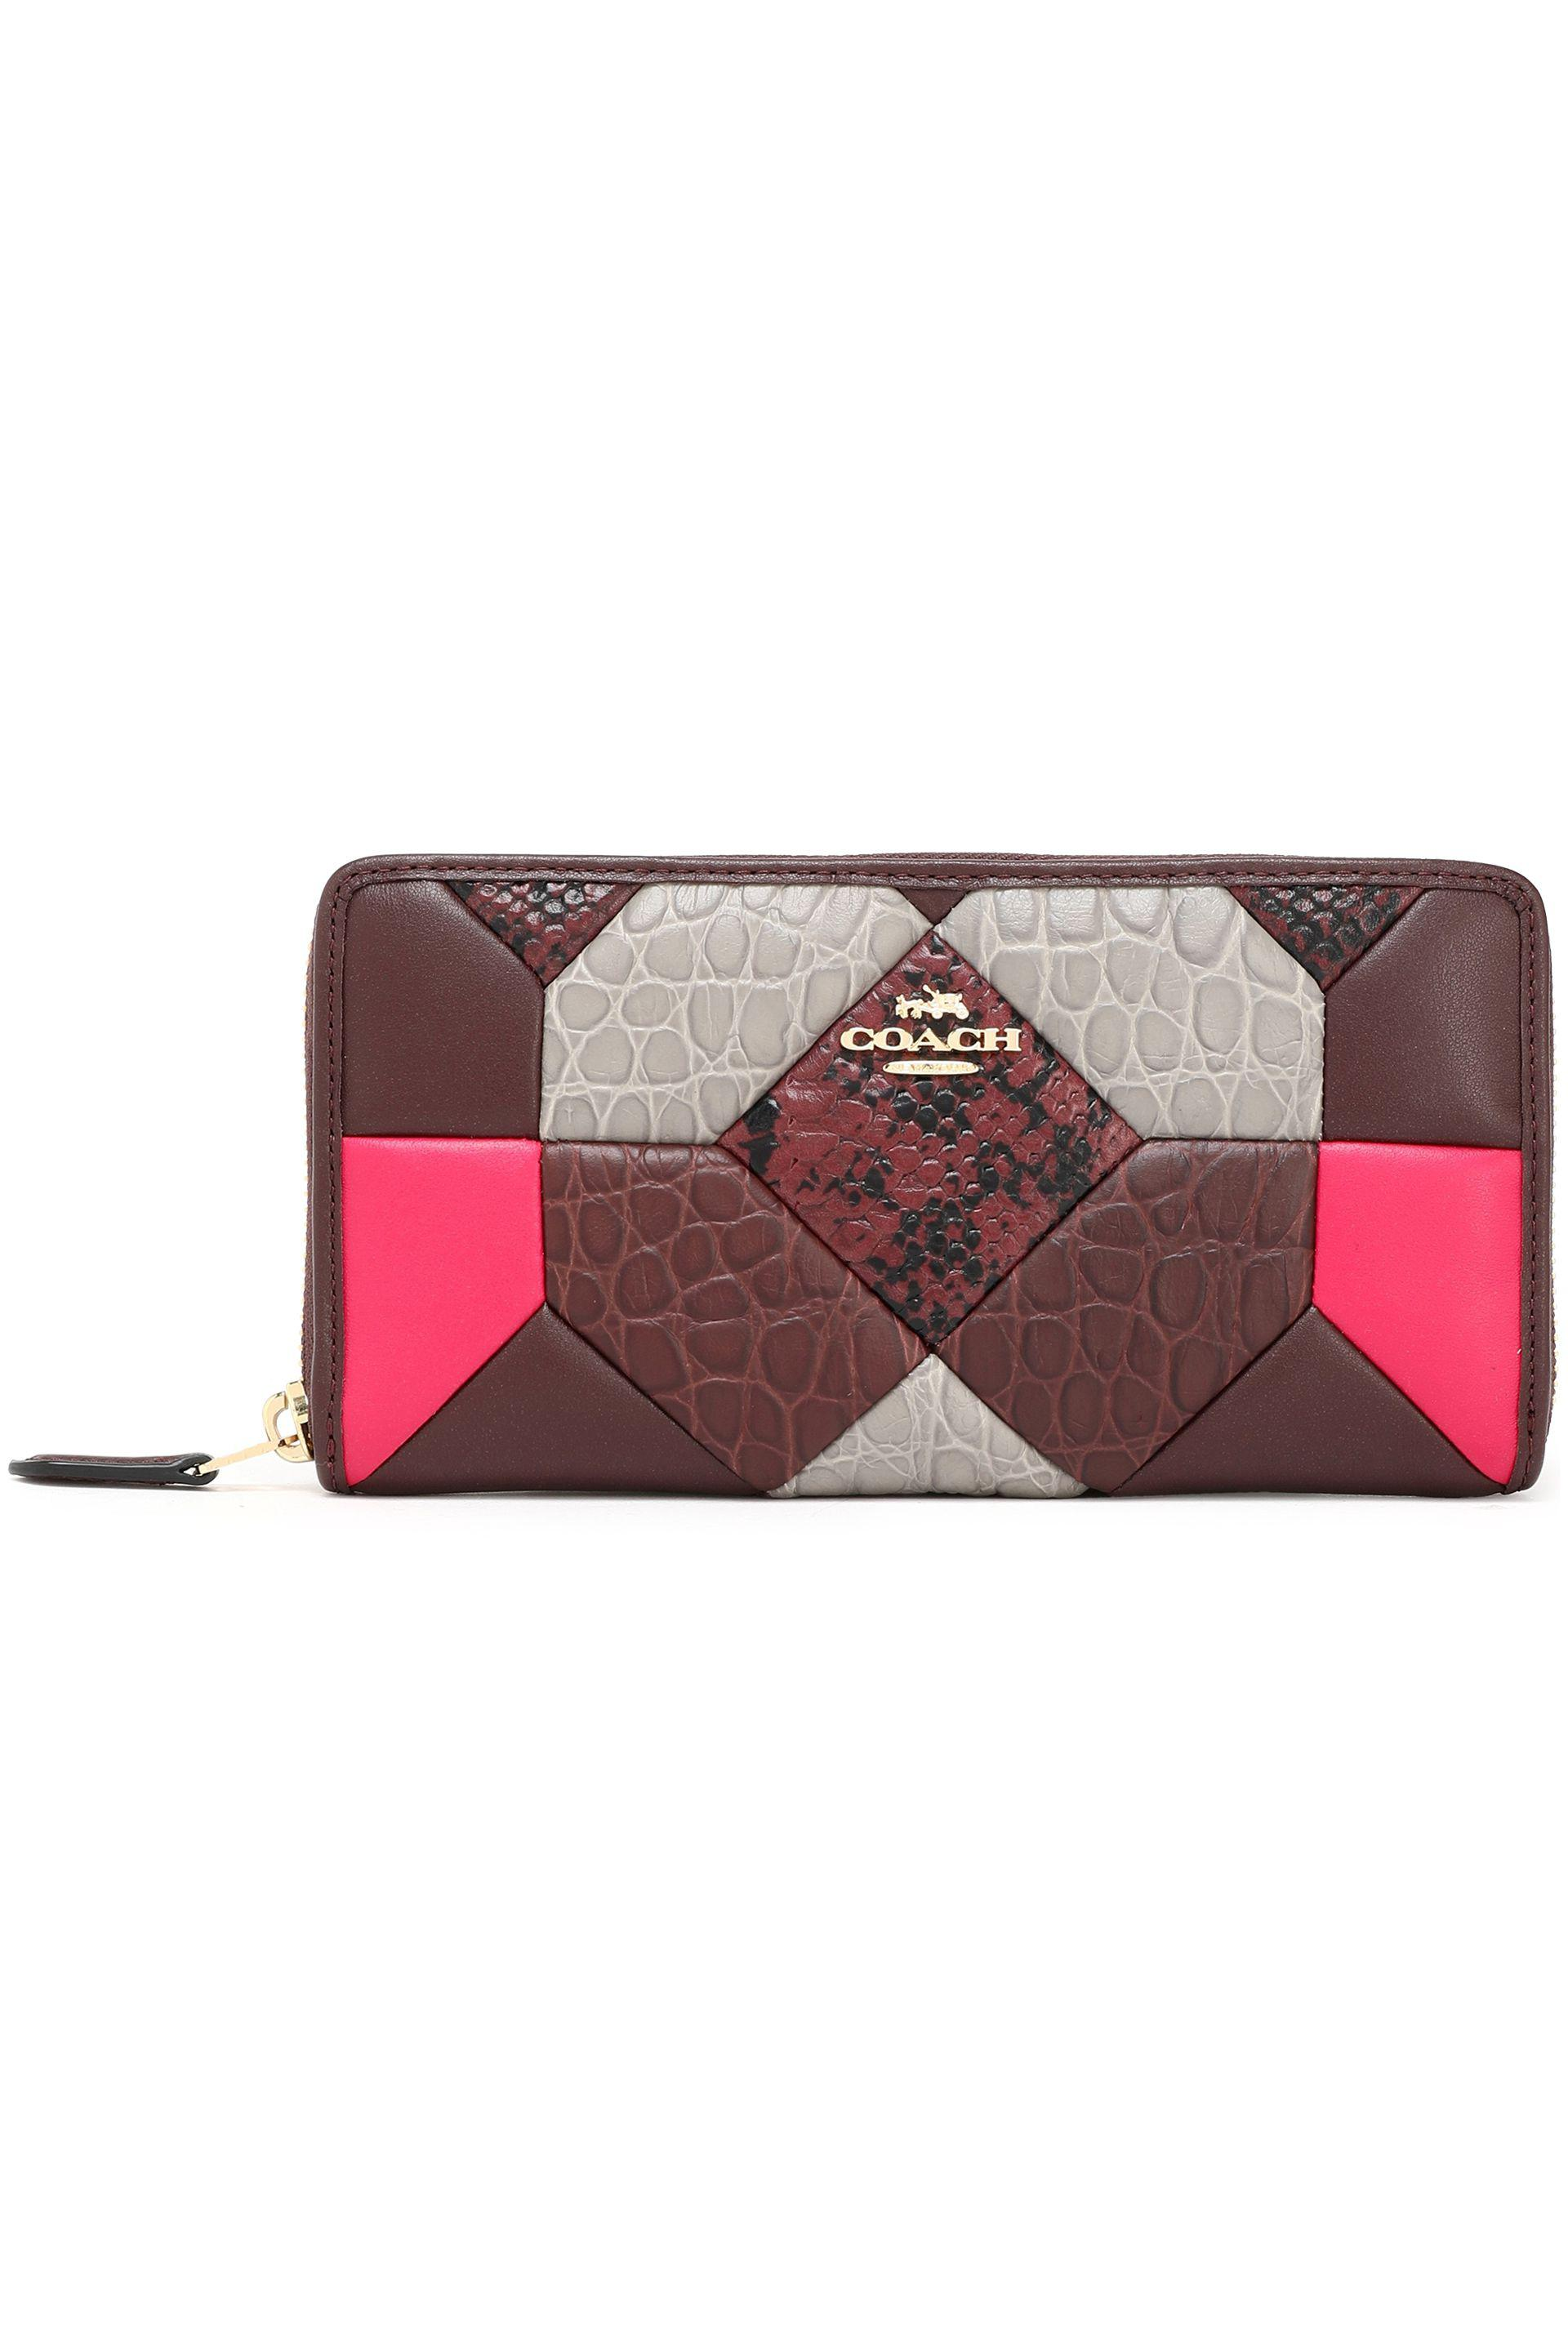 0e874b487f85 COACH Patchwork Smooth And Snake-effect Leather Continental Wallet ...